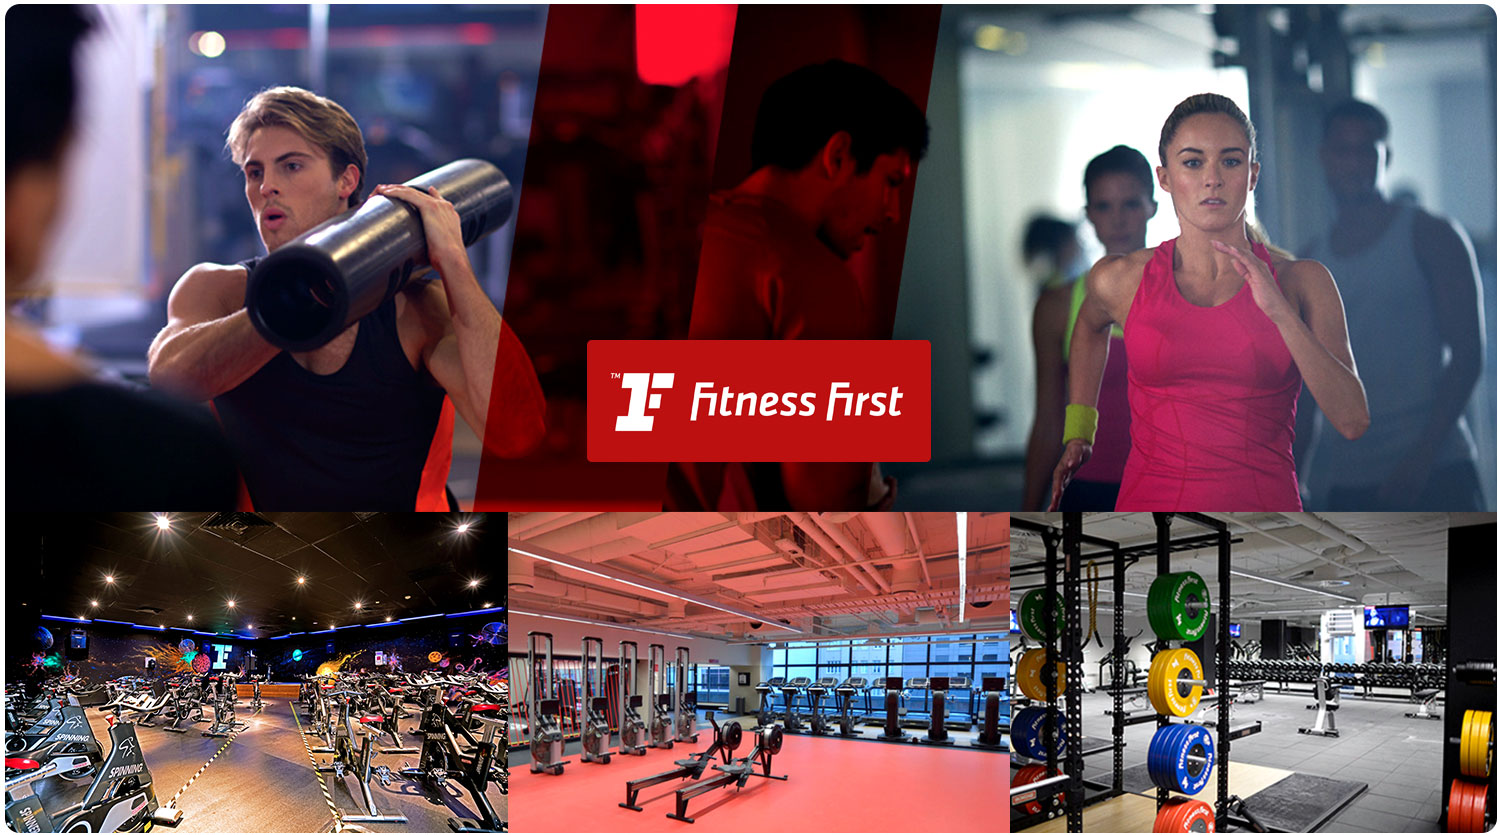 Start your Fitness Journey with Fitness First with only $14.95 for 14 days at Fitness First Mona Vale NSW. Experience our first class gym and freestyle classes inc. Pilates, Yoga, HIIT, Les Mills and more. Take the first step with Fitness First Mona Vale NSW.